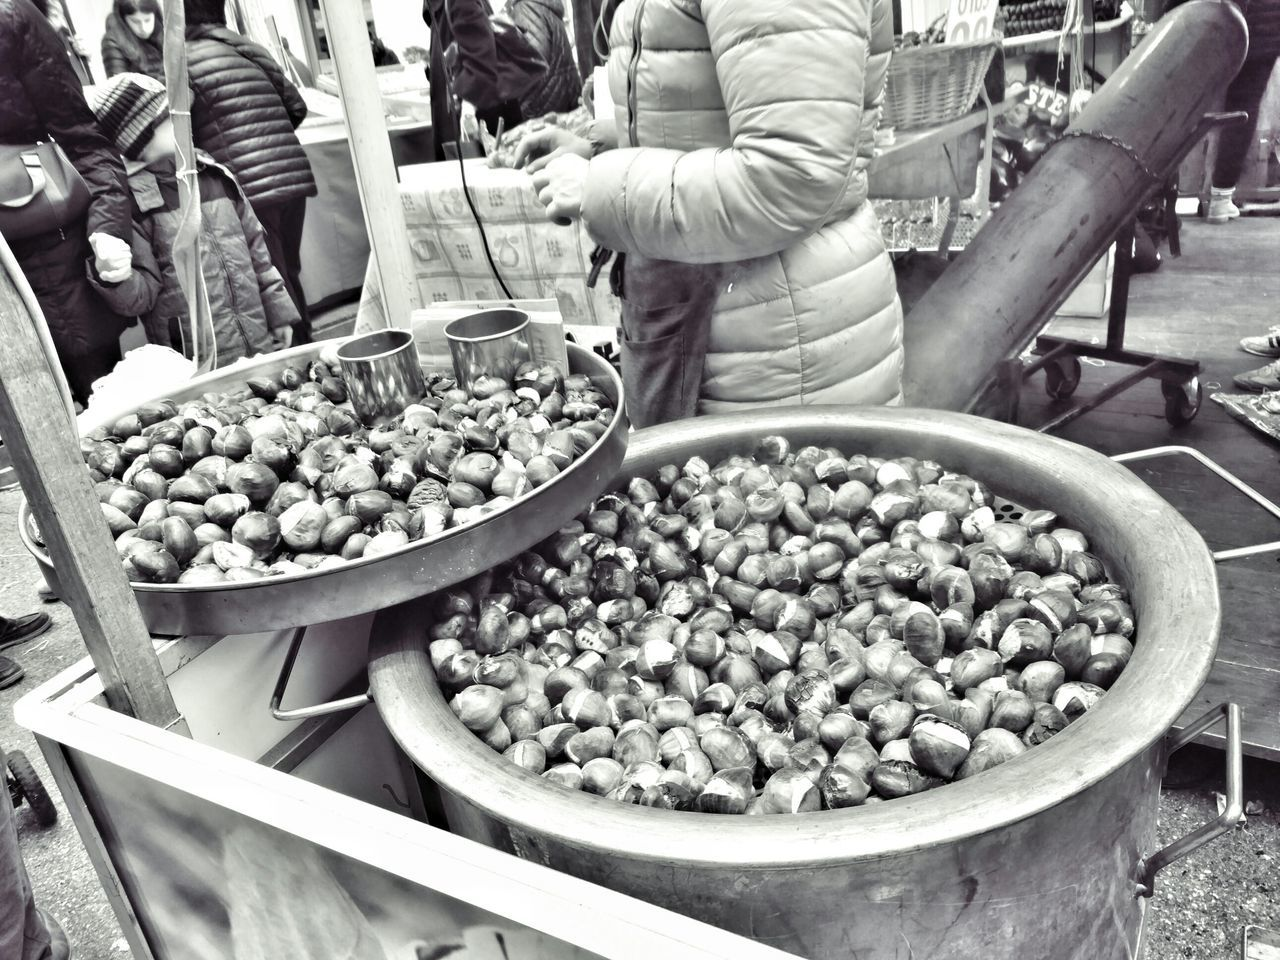 food and drink, food, real people, occupation, for sale, large group of objects, freshness, abundance, market stall, market, retail, men, outdoors, day, healthy eating, one person, working, people